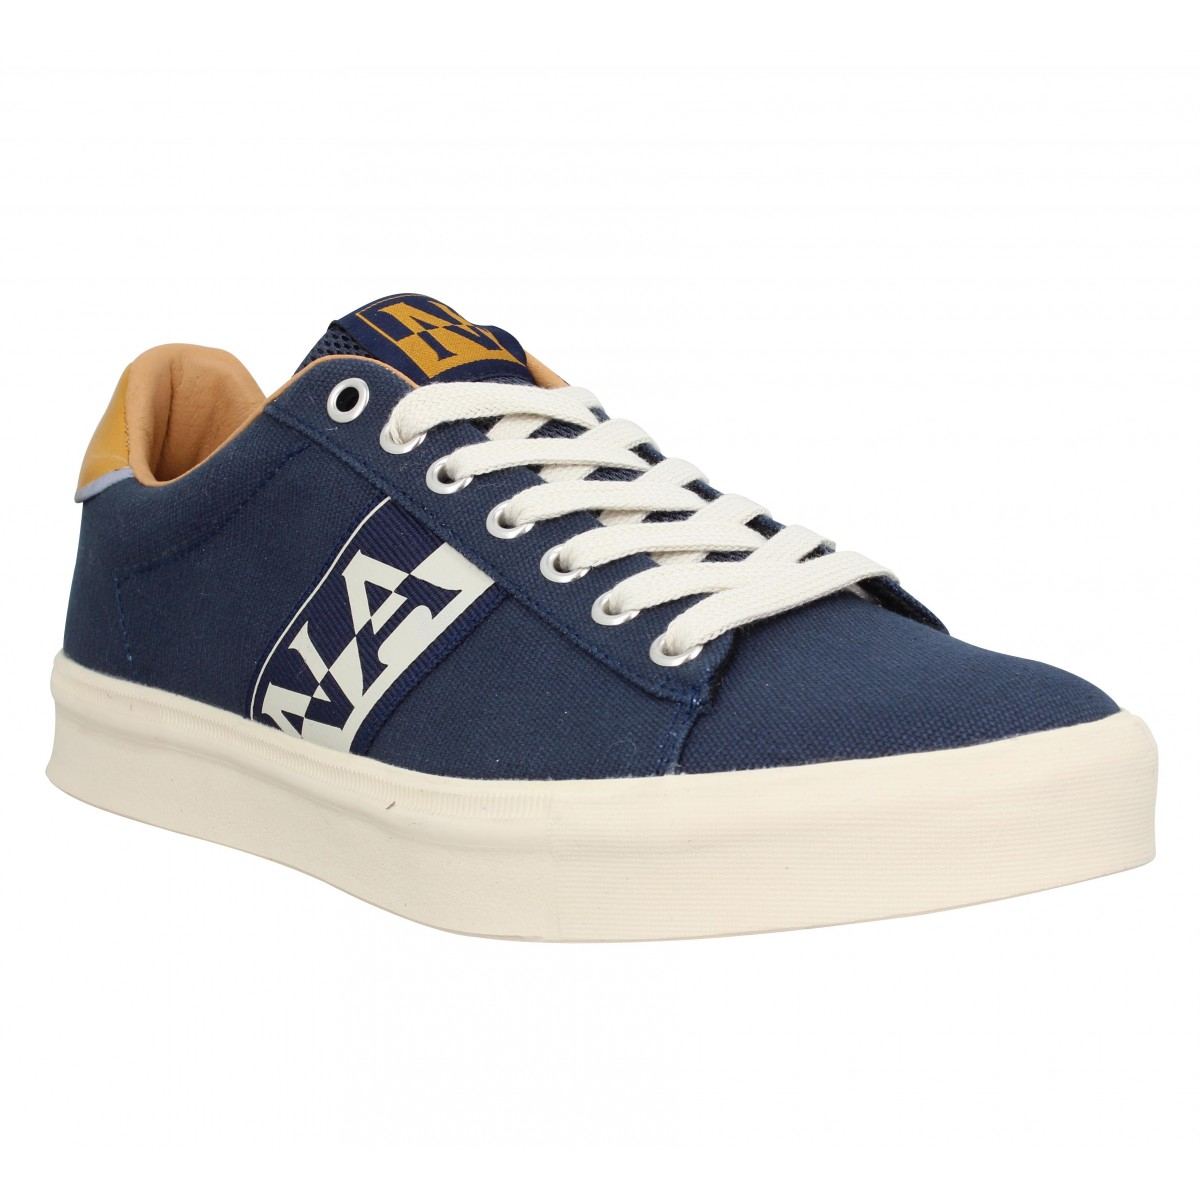 Baskets NAPAPIJRI Canvas Sneaker toile Homme Marine